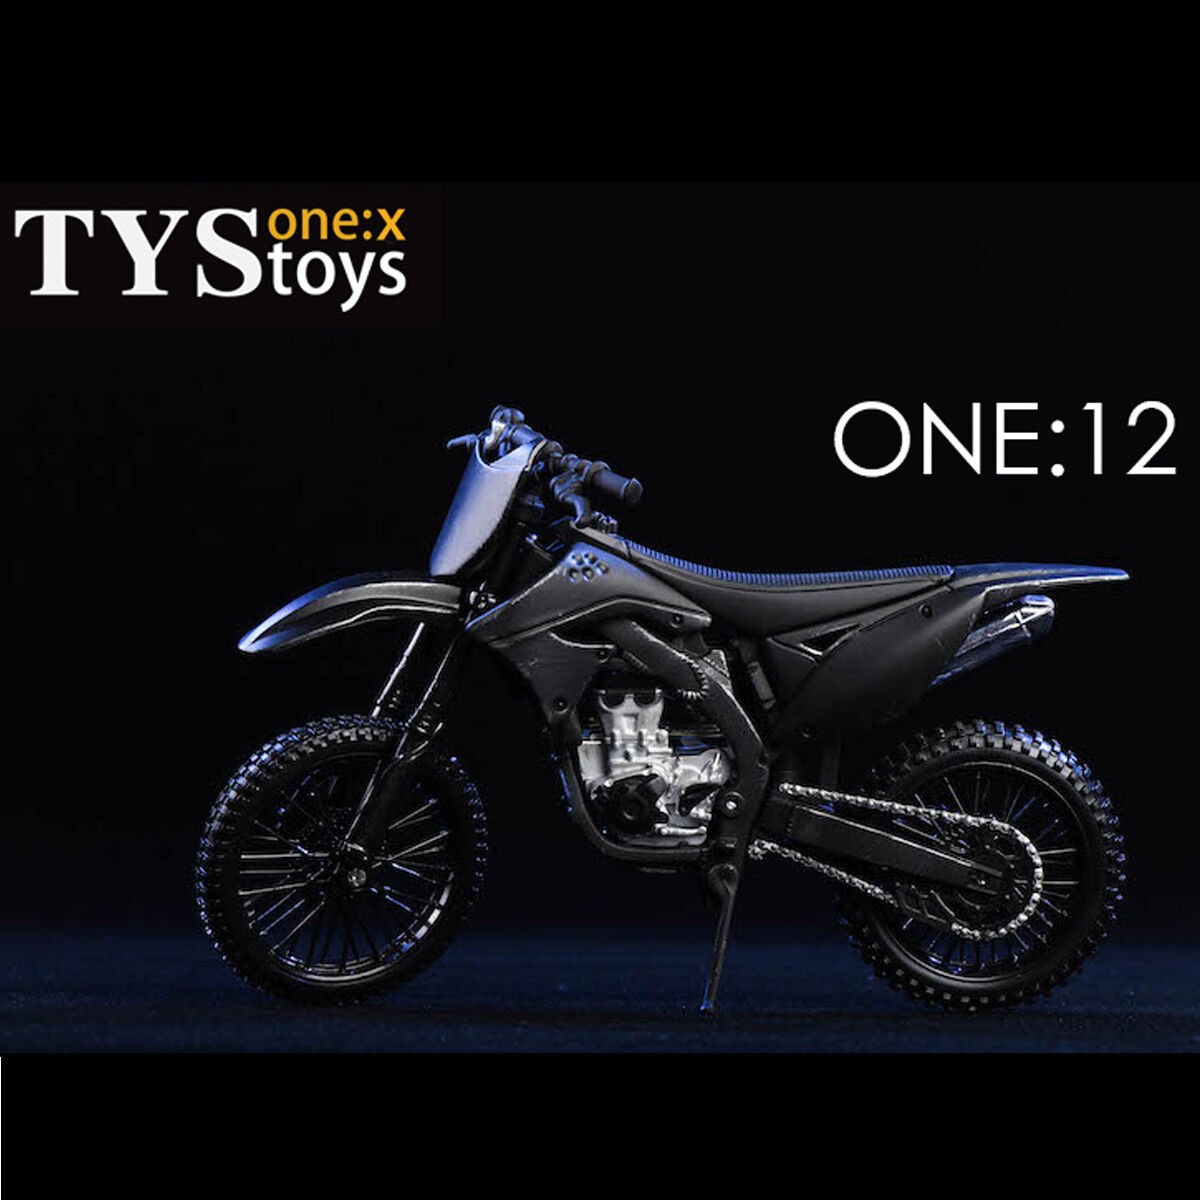 TYSTOYS 18DT05 1 12 Scale Motorcycle Model for 1 12 Action Figure